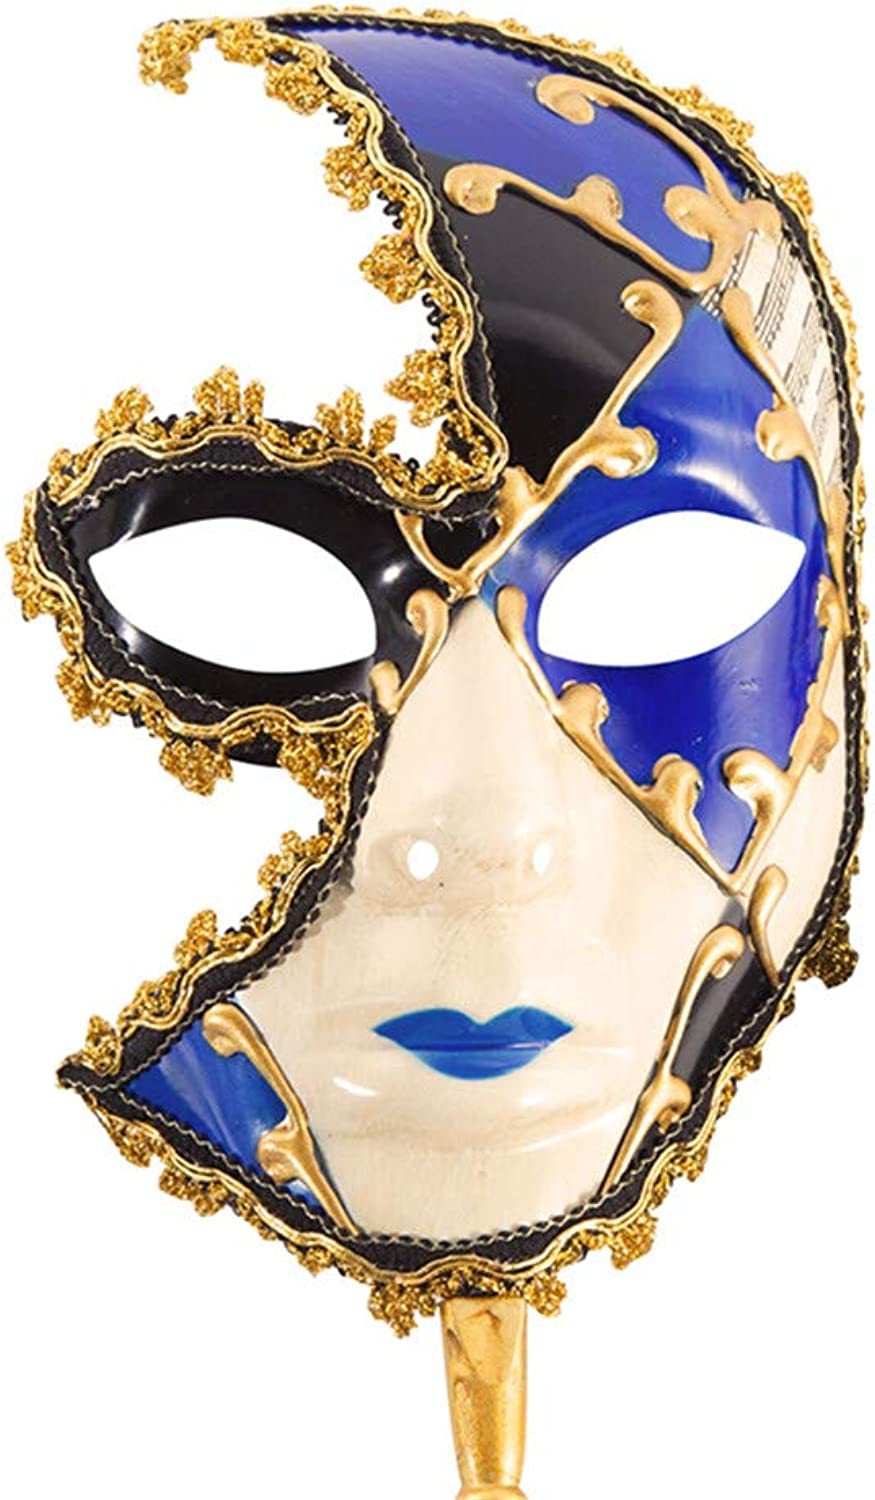 Half Face Mask Halloween Upscale Dress Party Party Mask Party Party Performance Mask,bluee